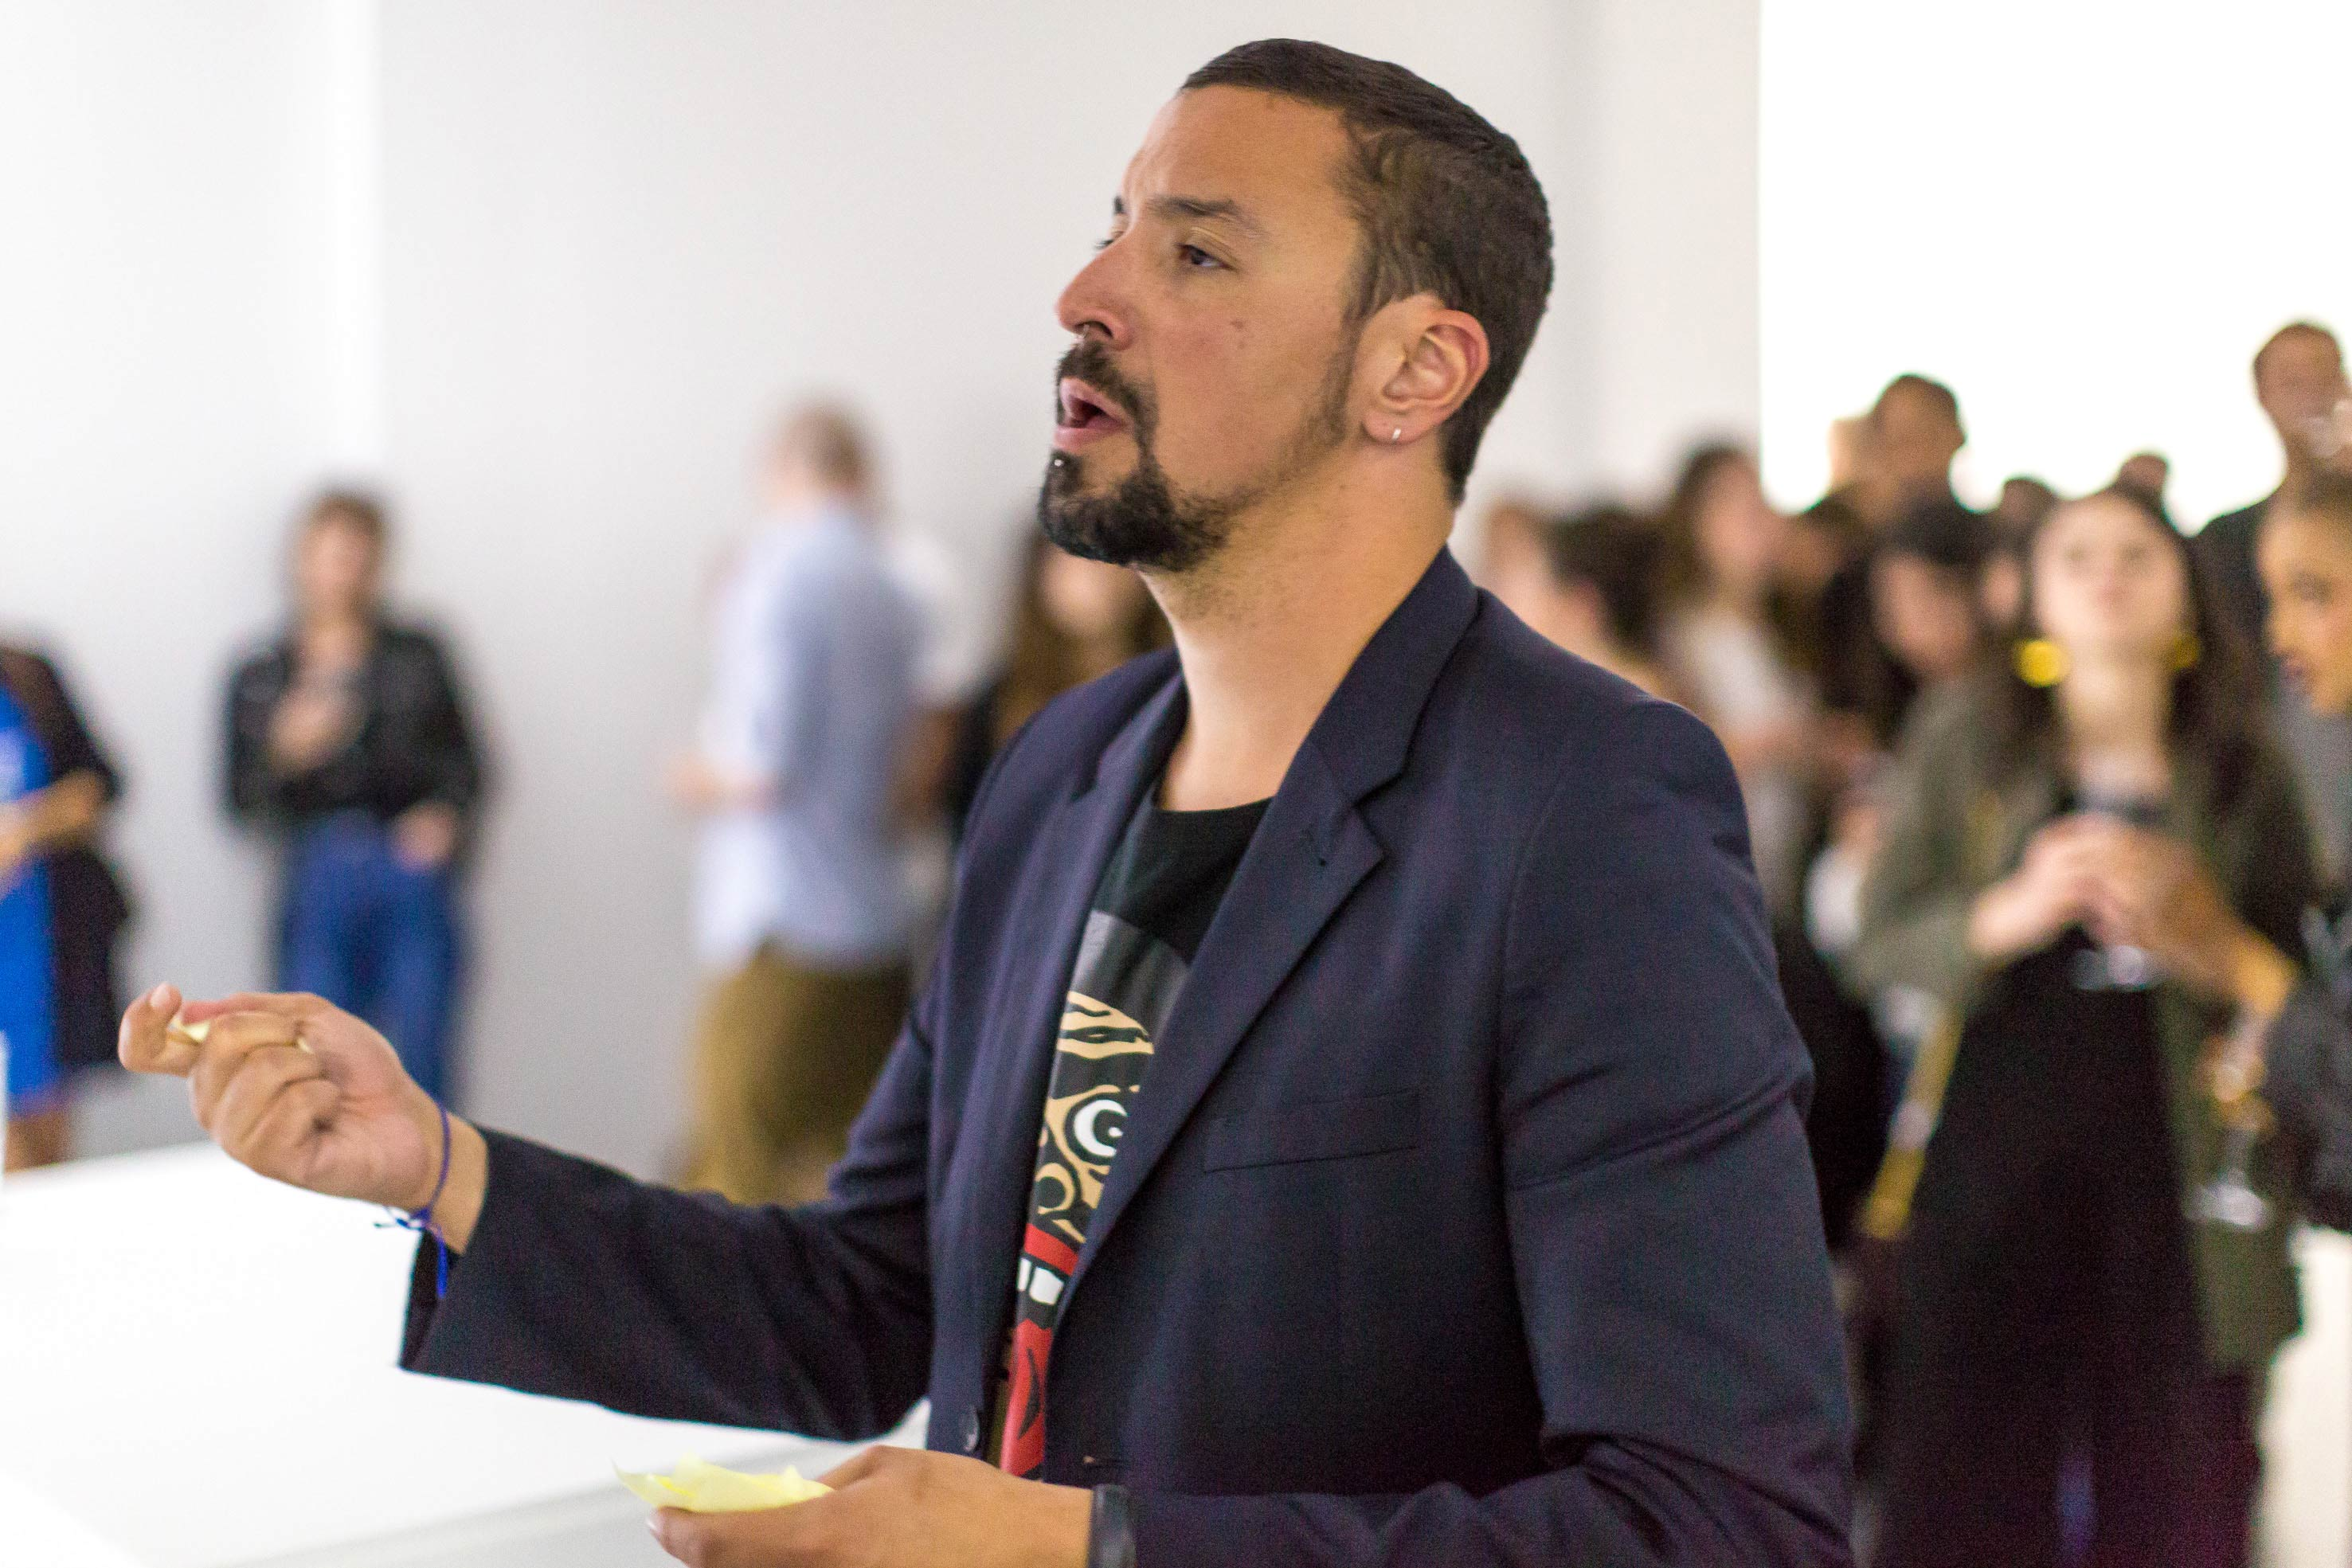 """For the inauguration of the gallery on June 9th, Tomàs Diafas invited visitors to whisper into his ear what they'd like to change about their lives in one word. Then before the assembled crowd the Greek artist cried out all of the responses… provoking laughter and occasional embarrassment.   """"TINO SEHGAL'S SITUATIONS COST BETWEEN 100,000 AND 200,000 DOLLARS. BUT HERE THERE IS NOTHING FOR SALE."""" Tommaso Calabro  But not all of Tino Sehgal's strictly imposed rules are followed at Nahmad Projects. """"We allow the public to take photographs,"""" Tommaso Calabro confirms. """"But unlike Tino Sehgal whose situations sell for 100 to 200,000 dollars, our performances are not for sale. We just gave the artists £1000 for their expenses."""" This obviously won't be the case for every project…  At the inauguration of the gallery on June 9th, Tomas Diafas invited visitors to whisper in his ear what they would like to change in their lives in just one word. Then before the assembled crowd the Greek artist cried out all of the responses, provoking laughter with some of the whispered words… """"Work"""" ((too much!) featured several times), """"girlfriend"""", """"dog"""" or """"philosophy"""".  """"I'd also suggested another idea,"""" laughs Francesco Bonami, """"I thought it would be very funny if Joseph, as a member of such a great family of collectors and dealers, bought the entire collection of Tino Sehgal and stored it in a warehouse. That would have been an amusing way to push the logic of Tino Sehgal's oeuvre to an absurd conclusion.""""  I am NOT tino sehgalat theNahmad Projectsgallery in London, on until July 20th   >> DiscoverTino Sehgal's intervention on the Jemma el-Fna square in Marrakech.  By Thibaut Wychowanok"""